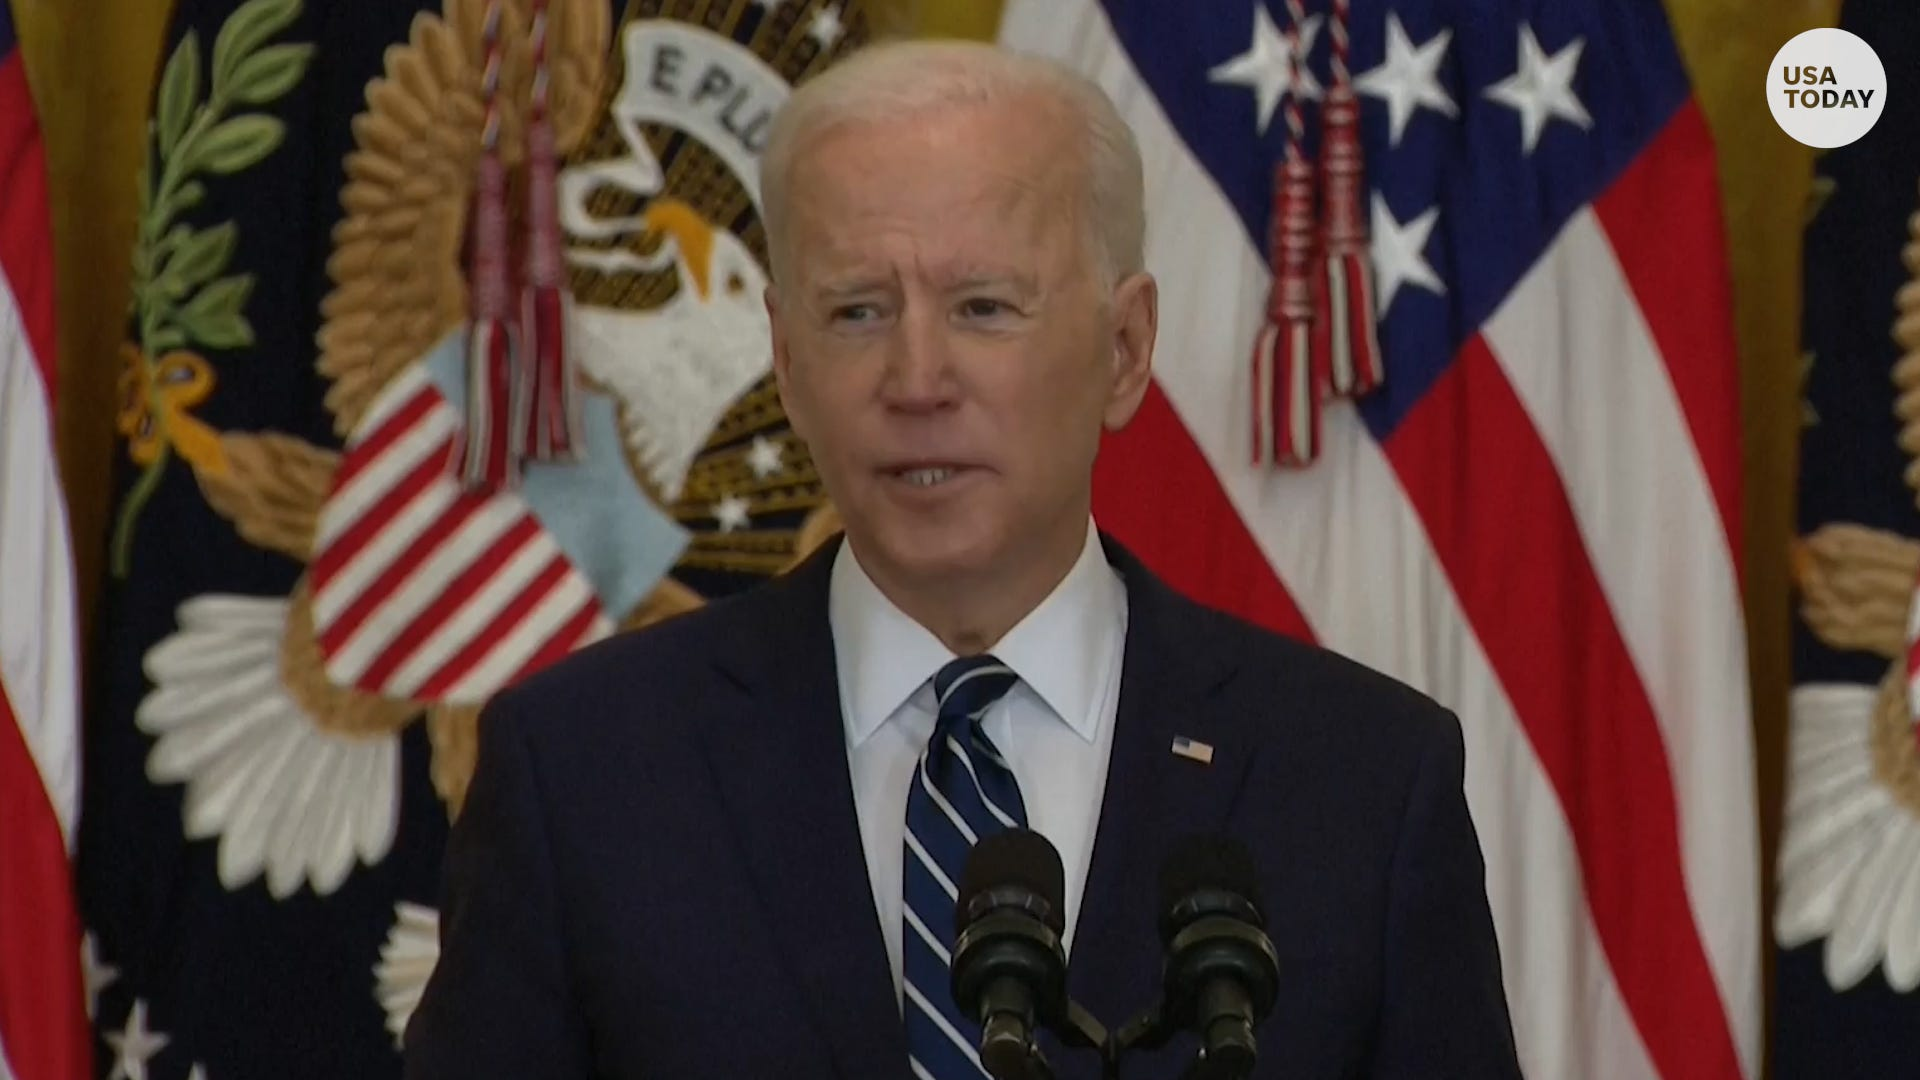 'I believe we can do it': Biden sets new goal of 200M COVID-19 vaccine shots in 100 days